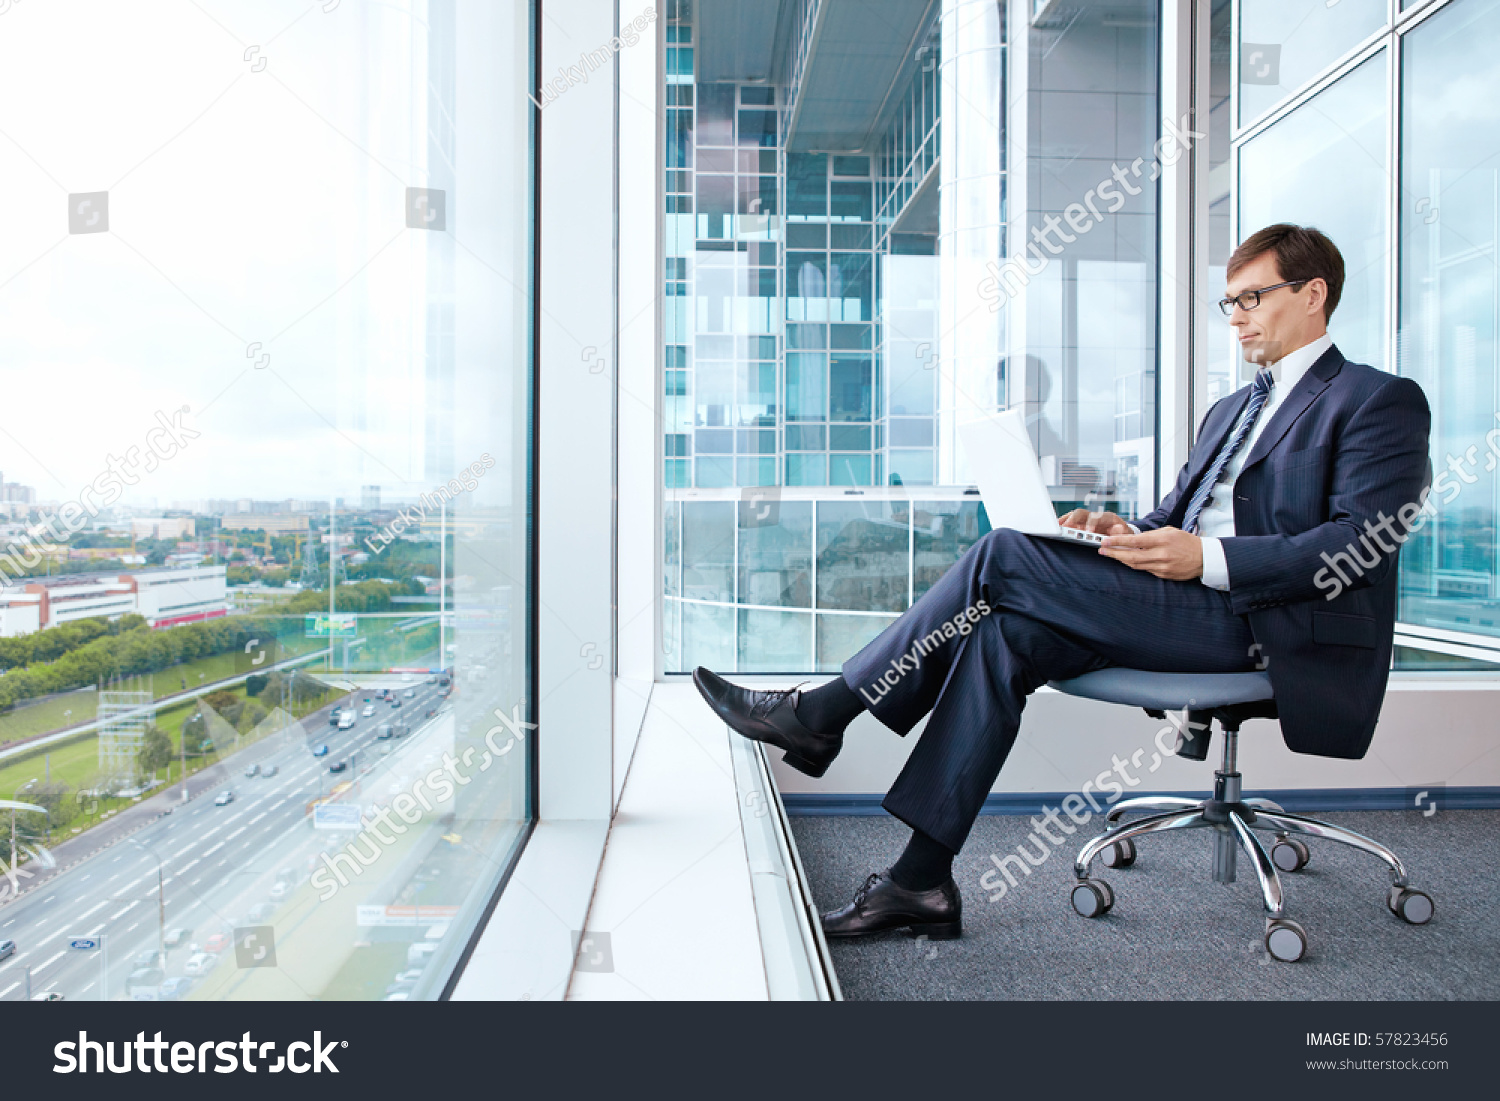 Man Works Laptop Office View Window Stock Photo 57823456 ...